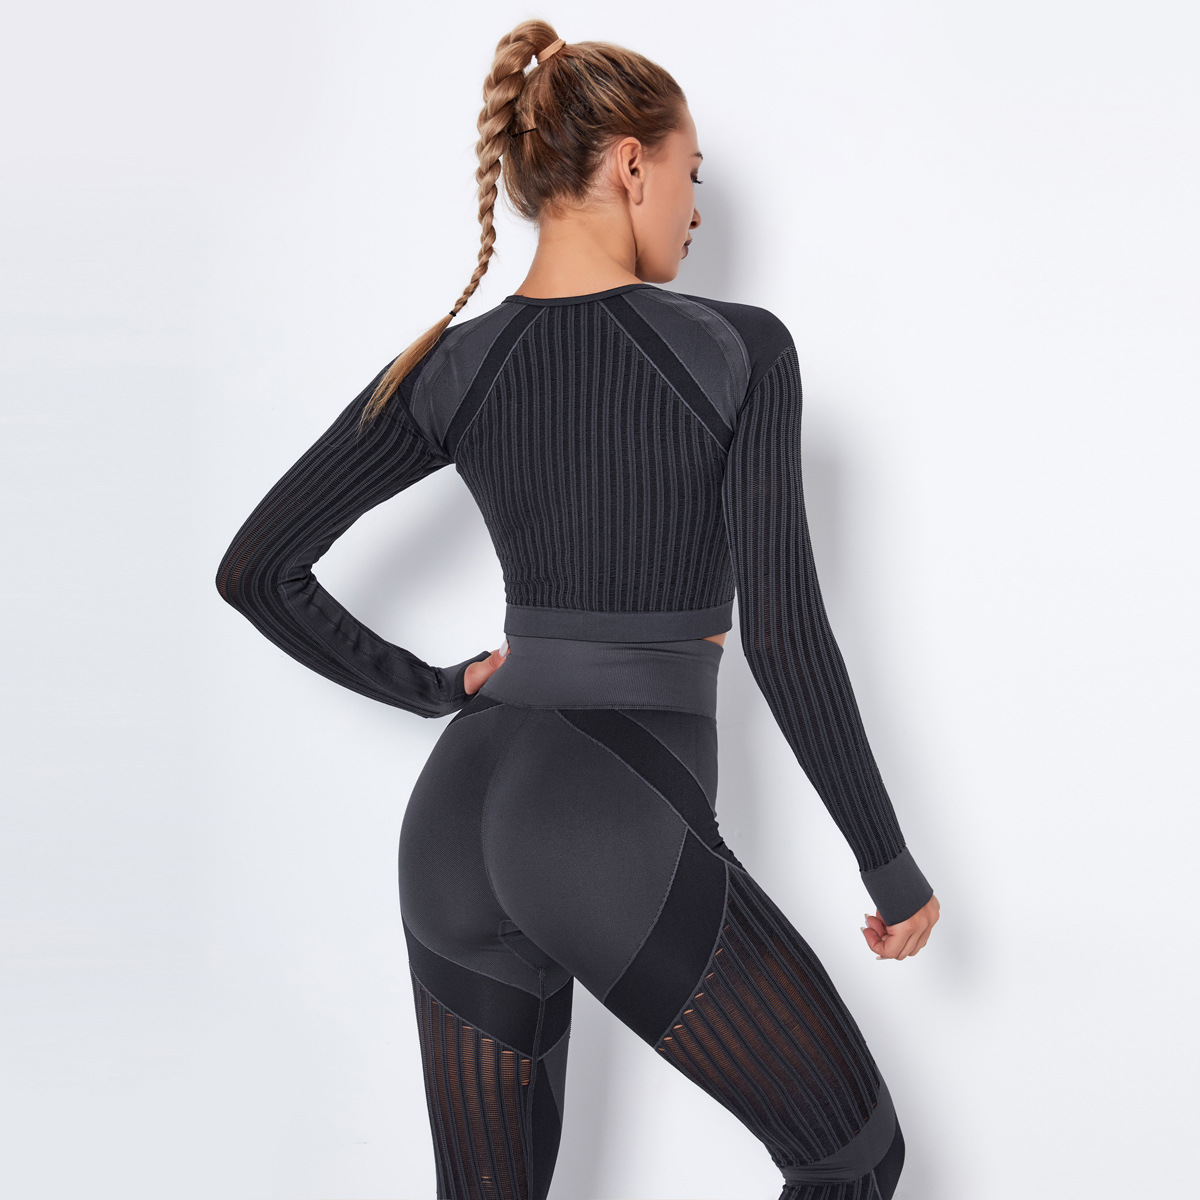 seamless knitted quick-drying breathable hollow fitness long-sleeved top NSLX8999